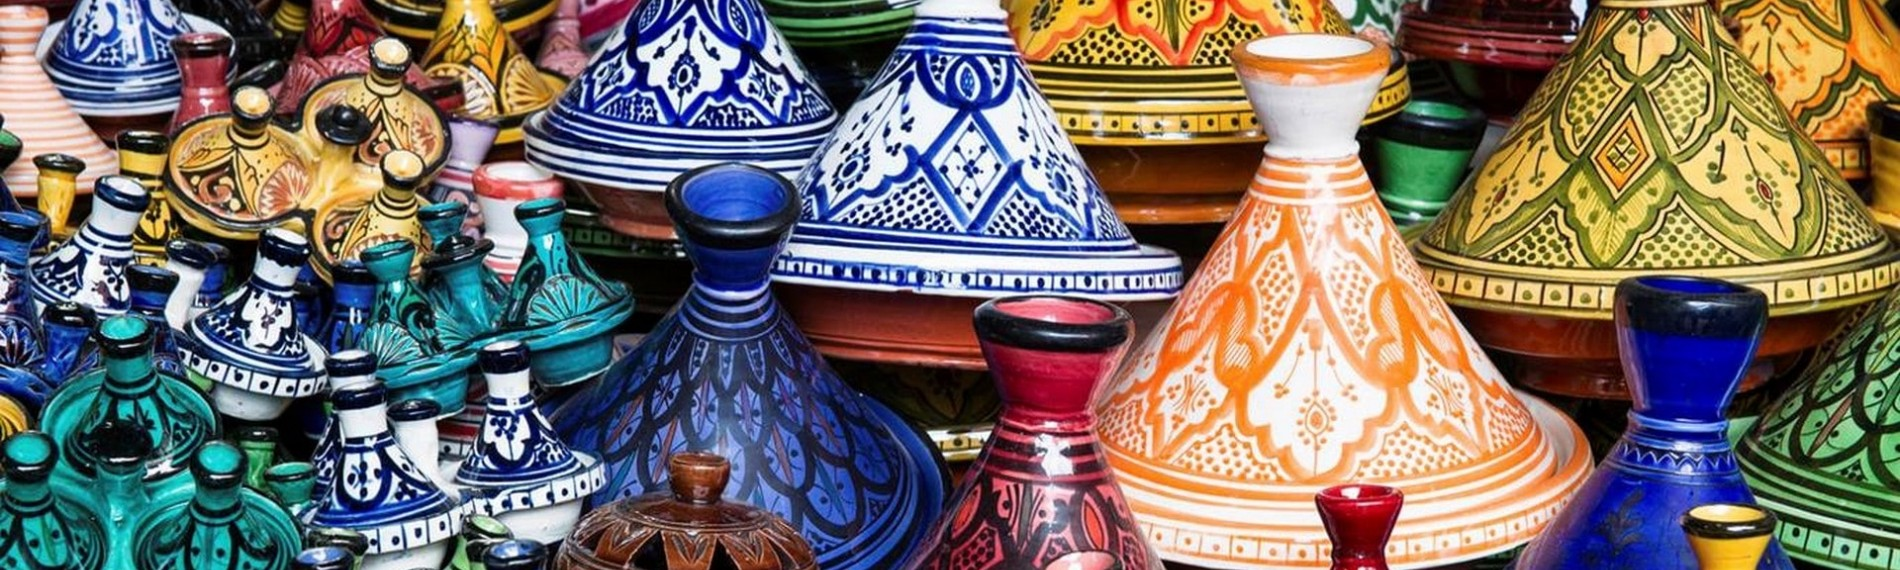 buying goods in Morocco